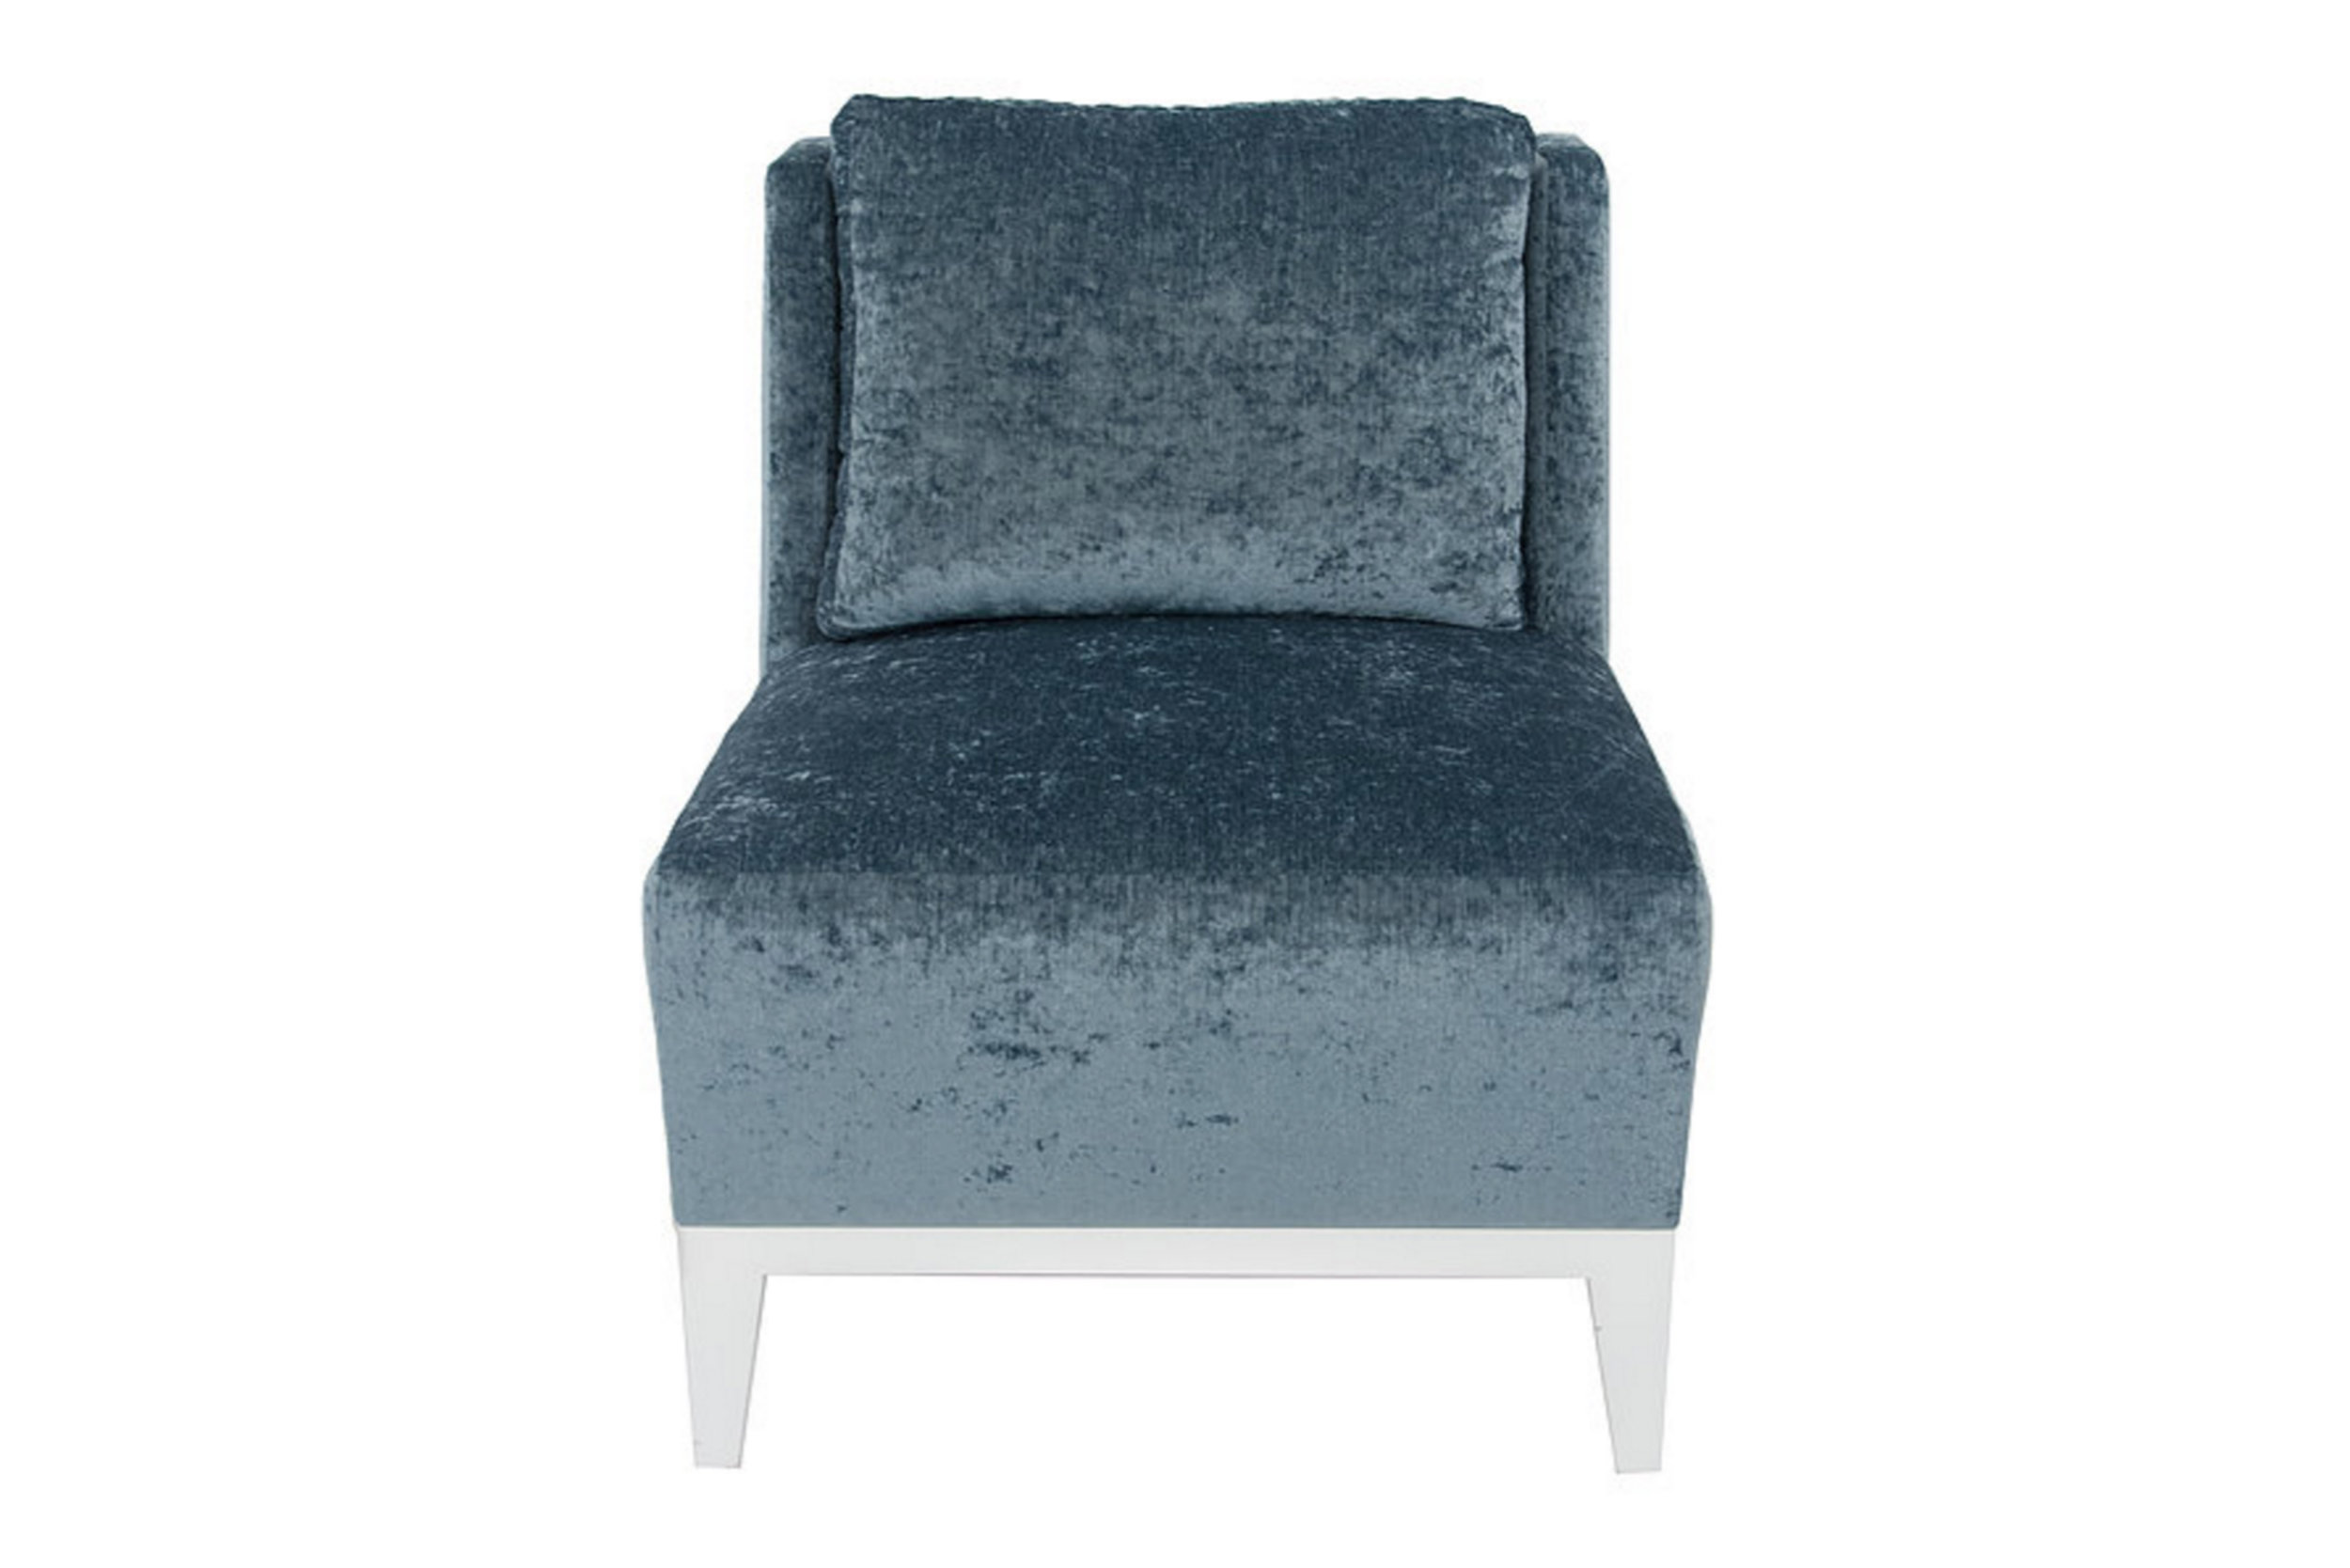 SLIPPER LOUNGE CHAIR FRONT VIEW.jpg